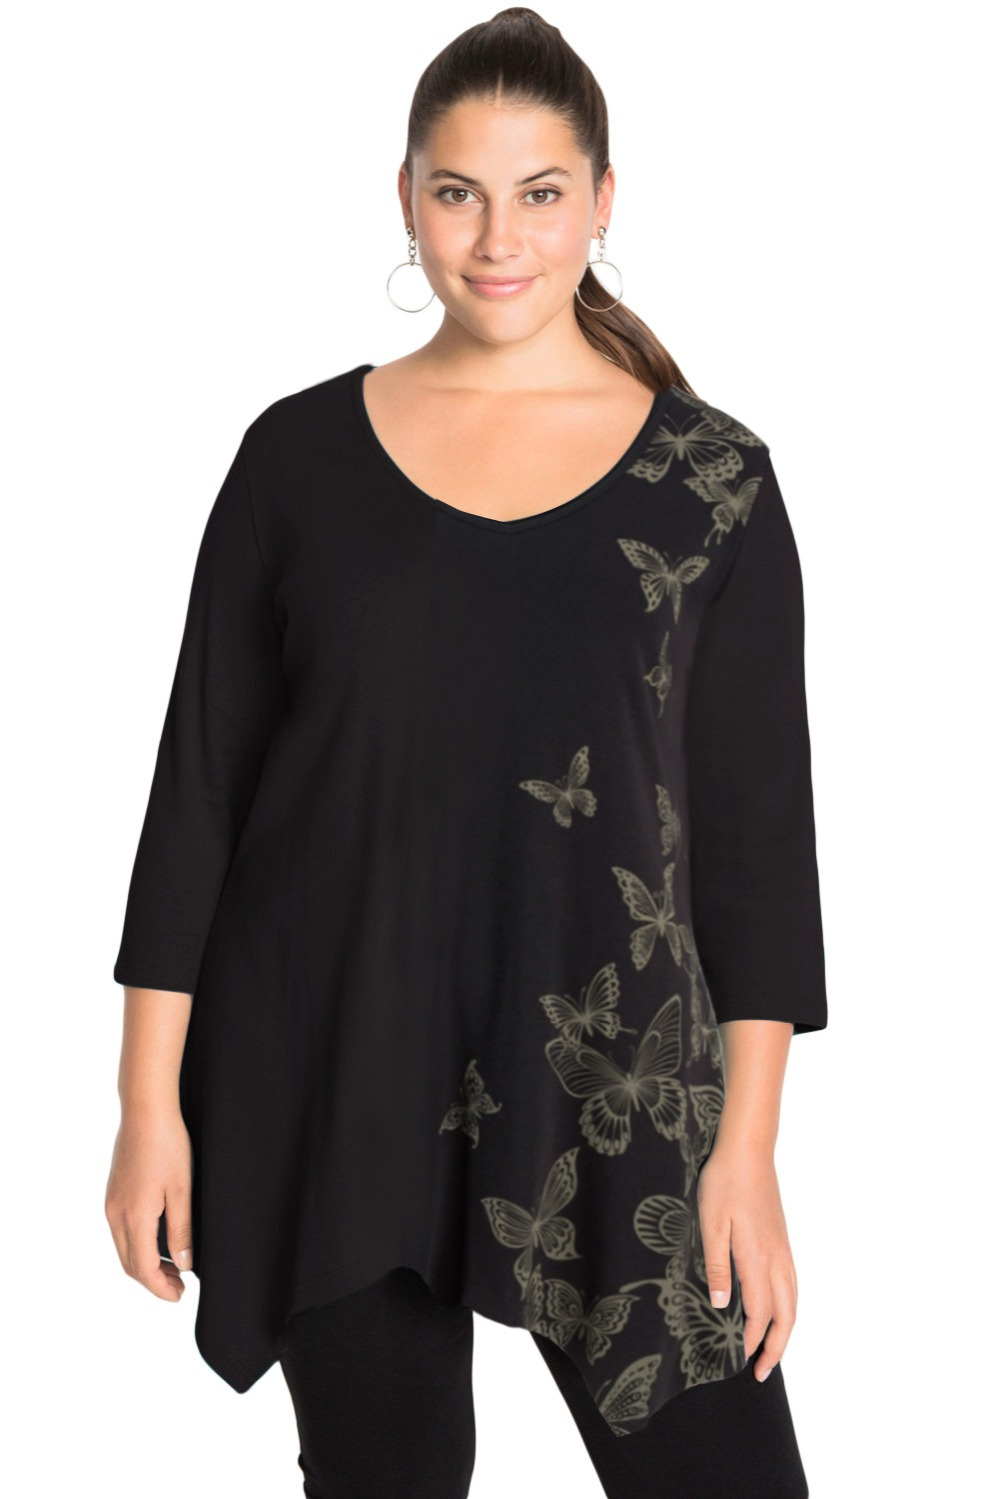 Black-V-Neck-Butterfly-Print-Plus-Size-Top-LC251495-2-1